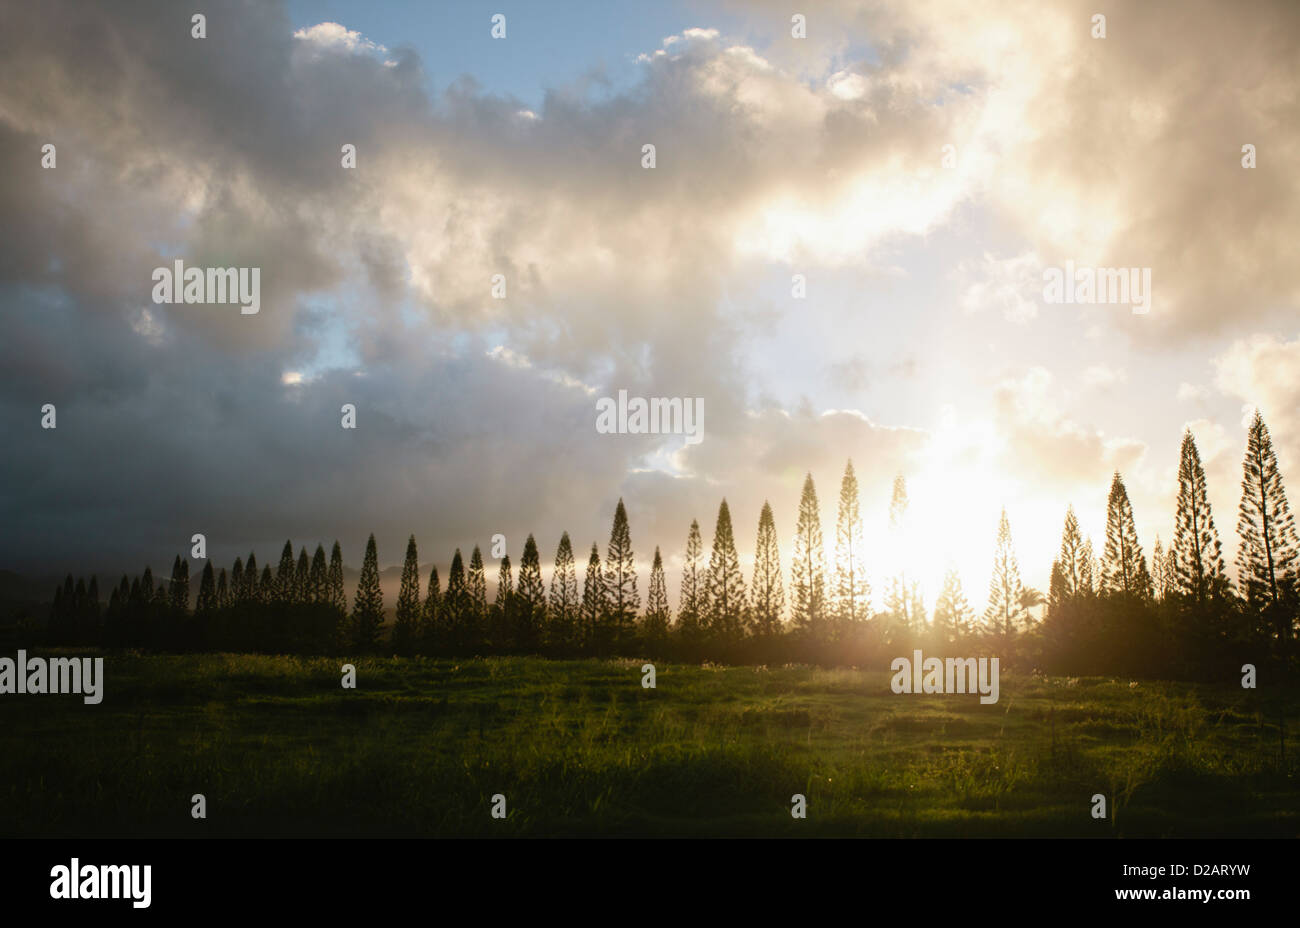 Sun shining through bare trees - Stock Image